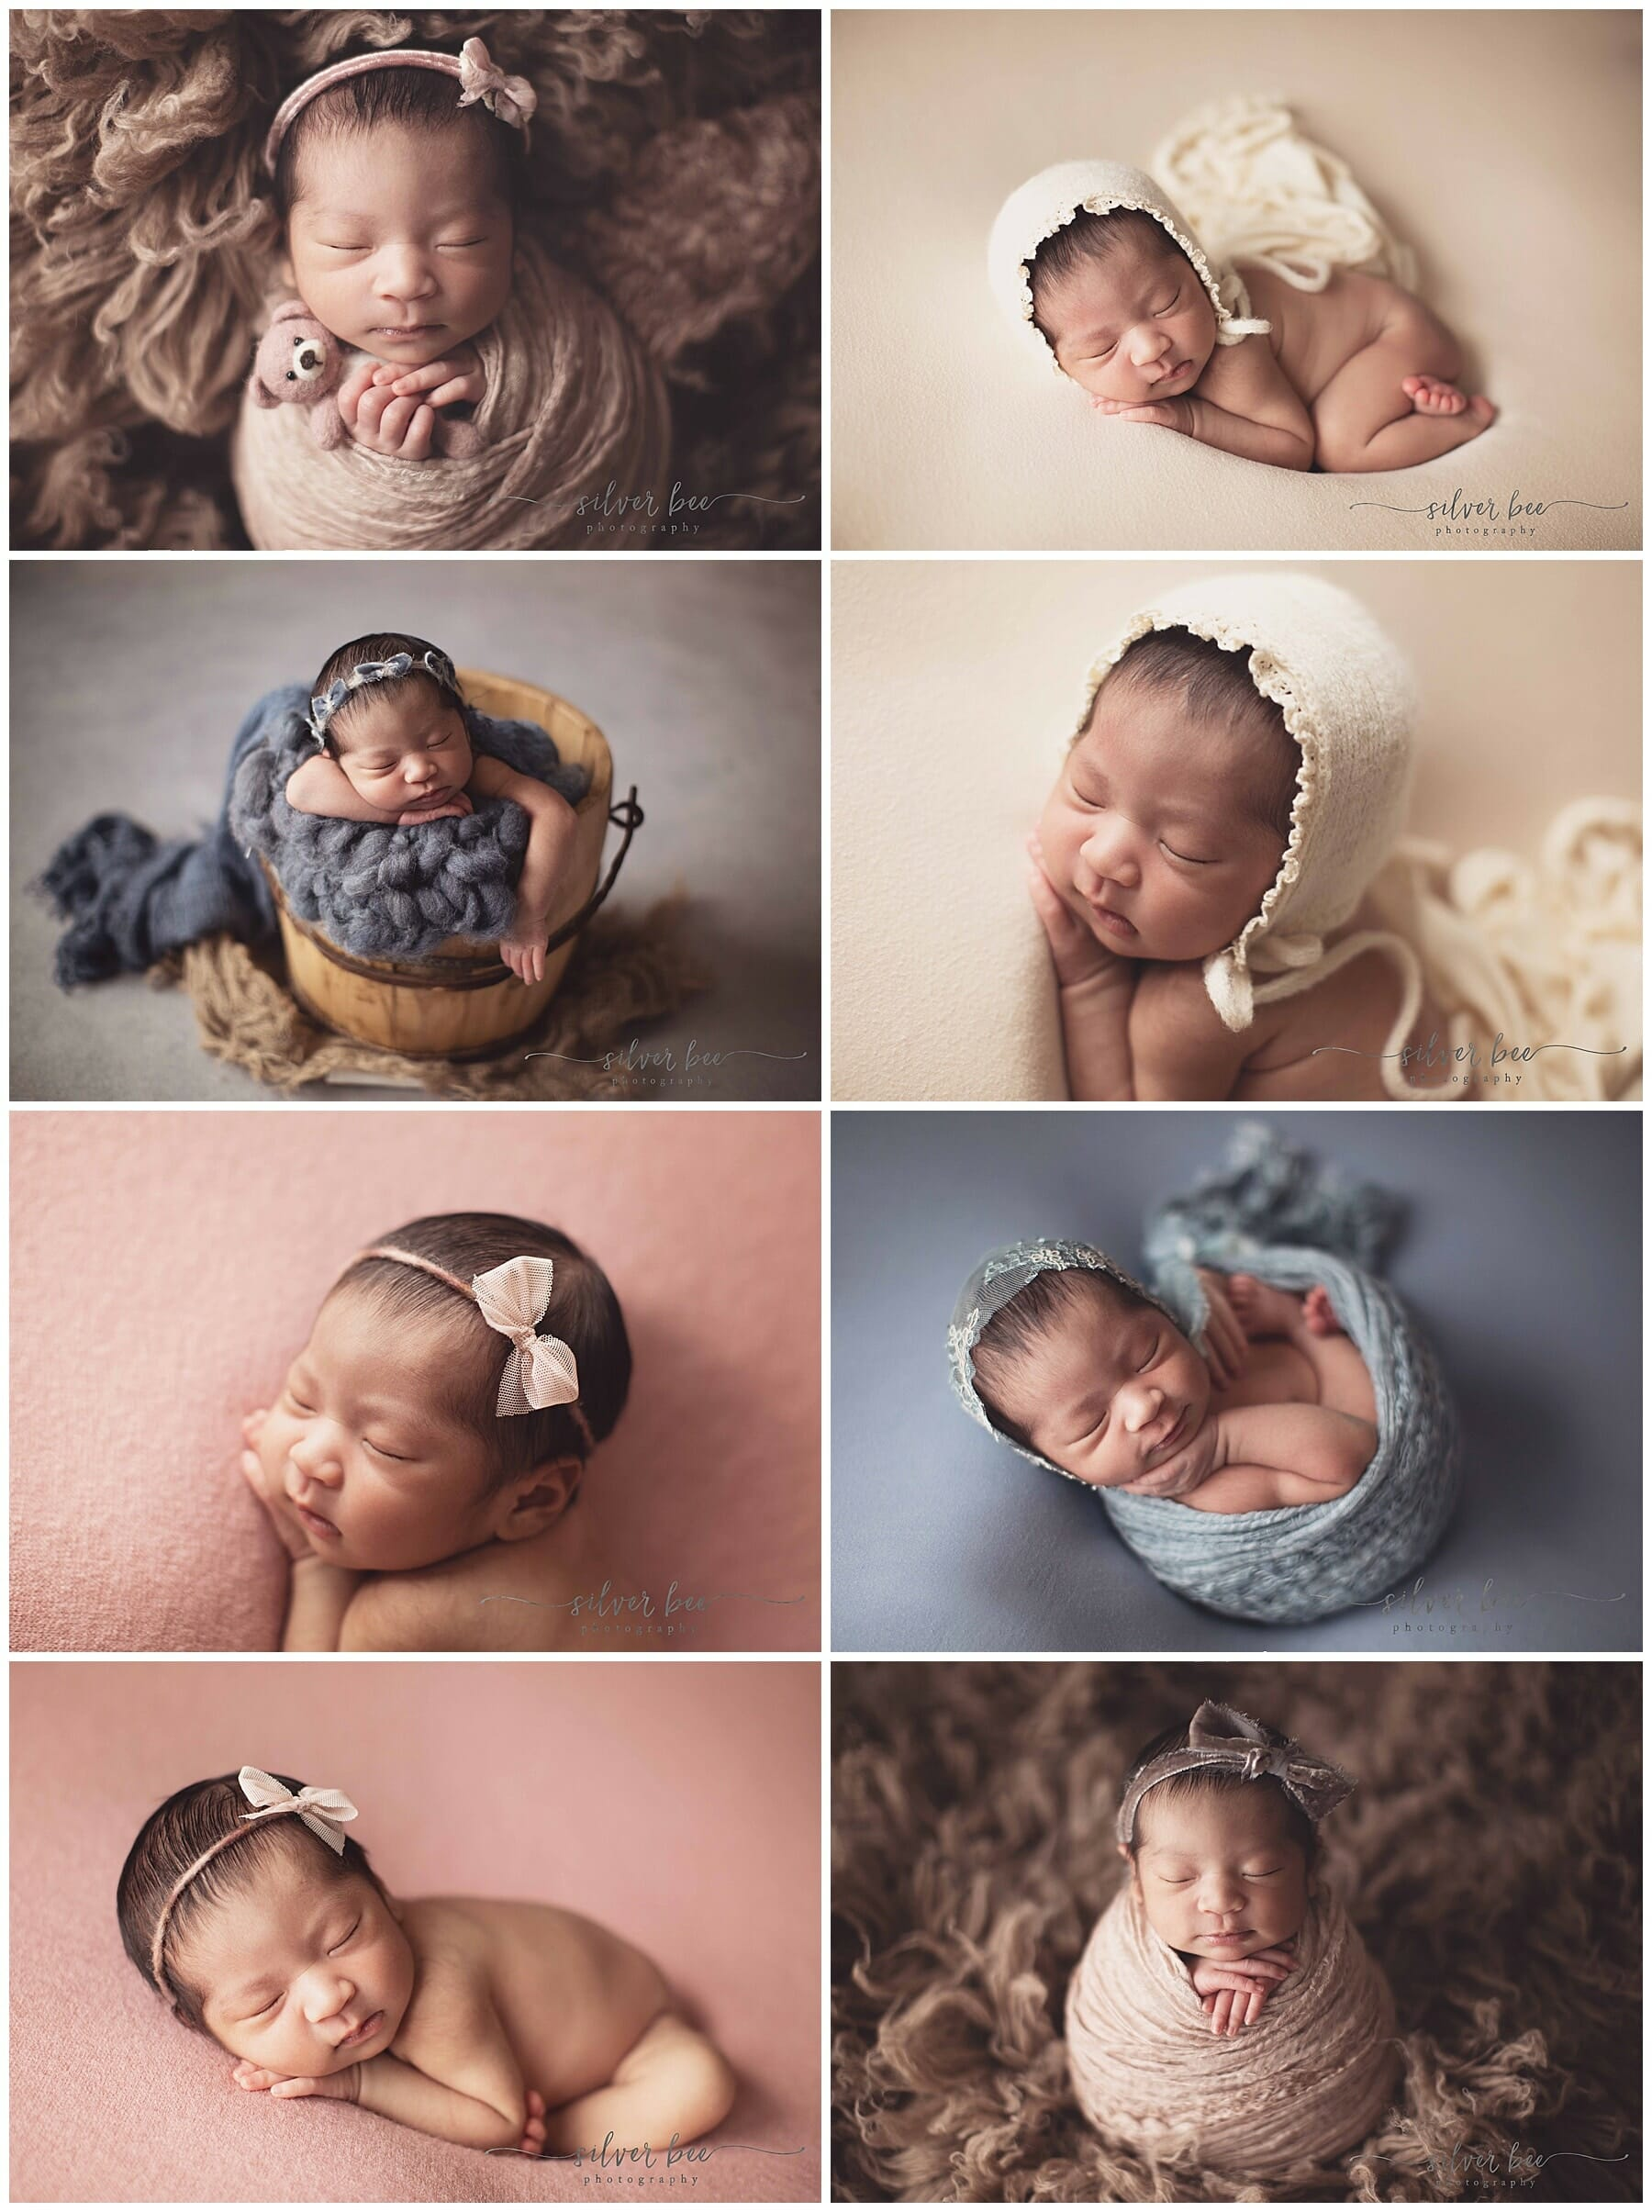 Austin Newborn Baby Photo Shoot at Silver Bee Photography